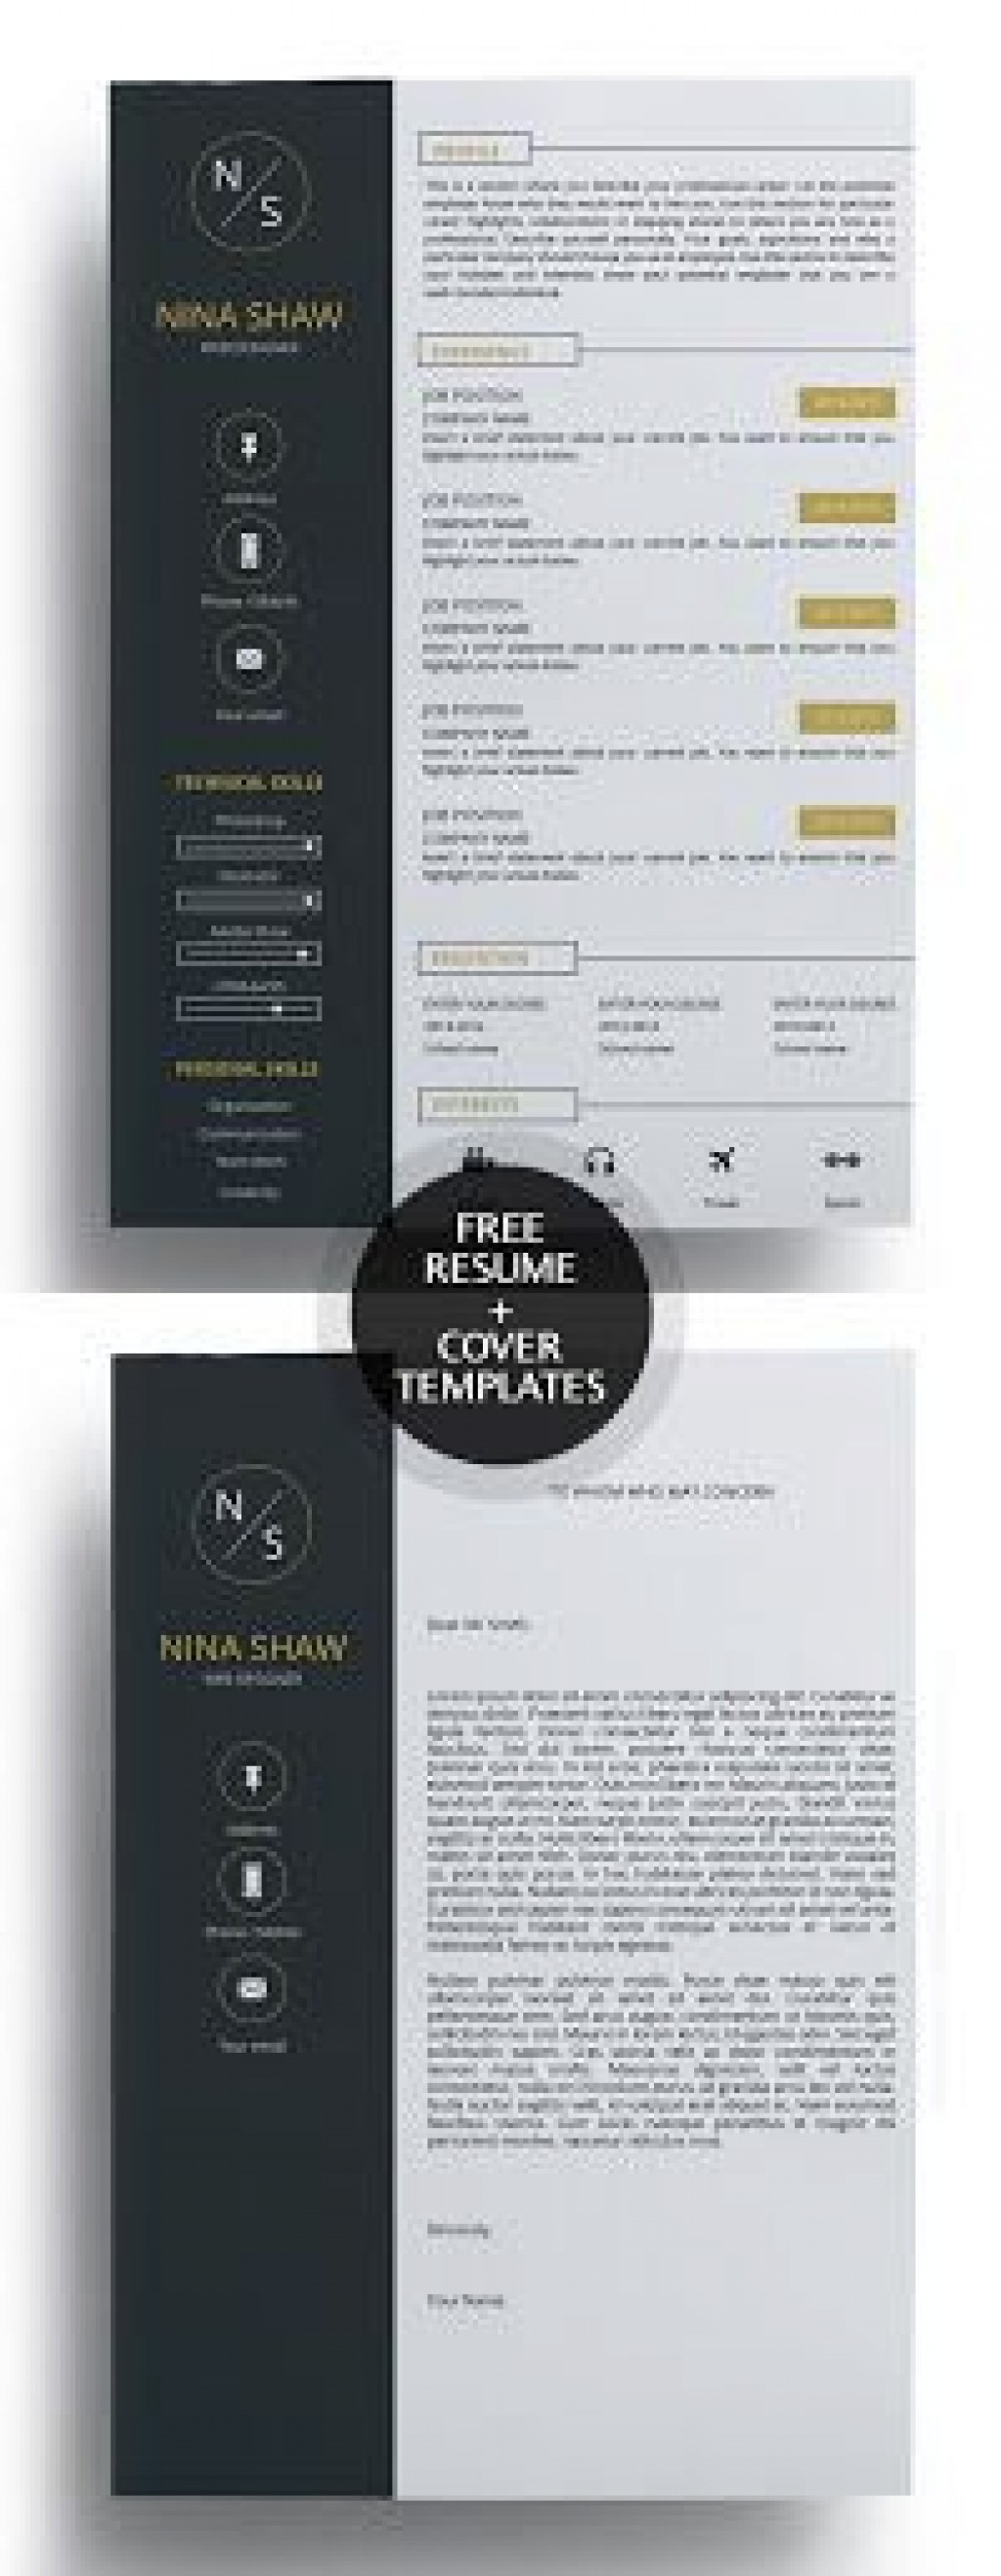 009 Fearsome Free Download Cv Cover Letter Template Example  TemplatesLarge